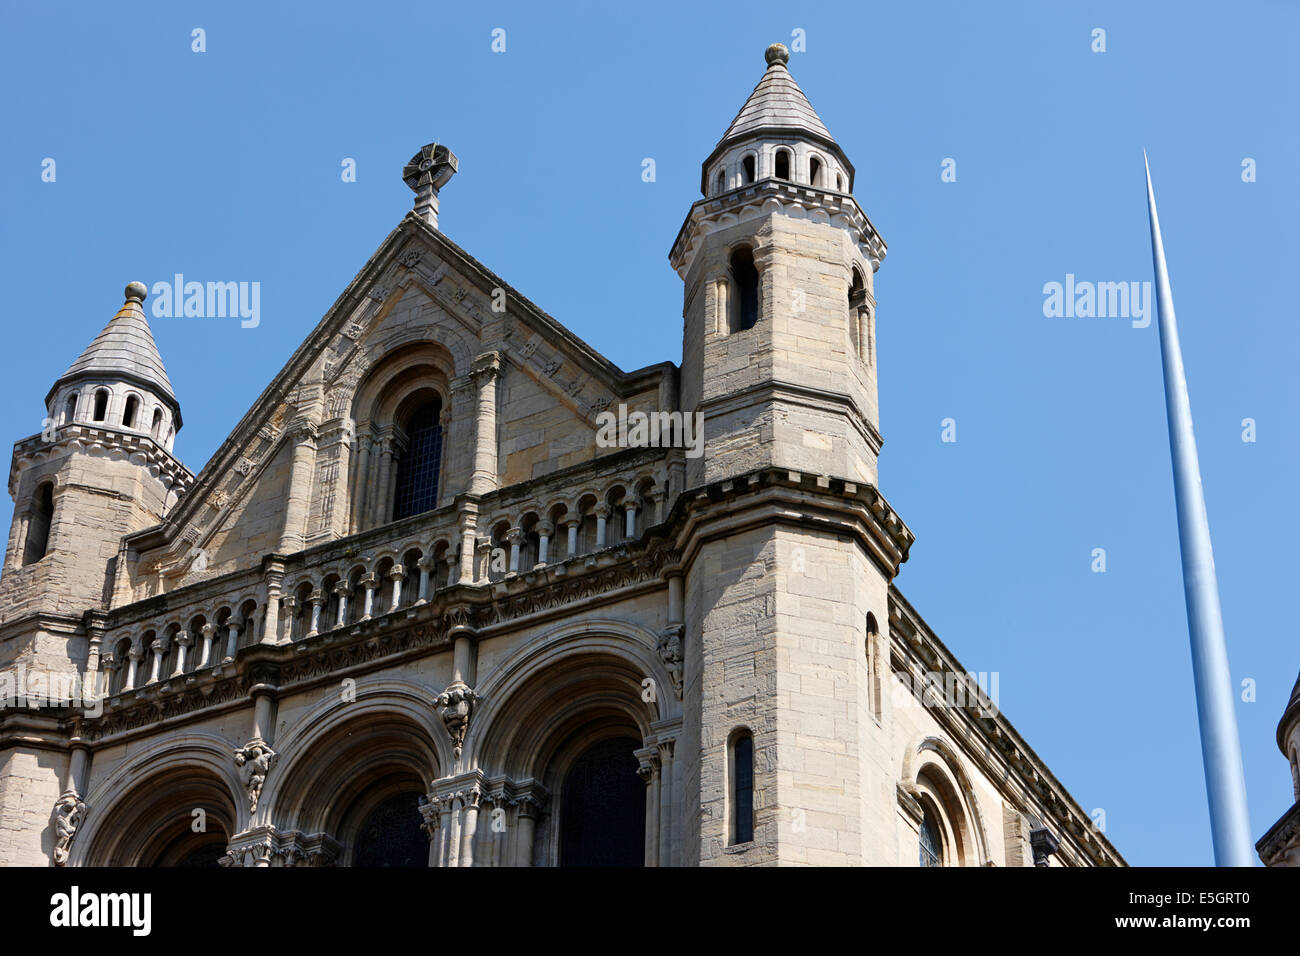 st annes belfast cathedral and spire Belfast city centre - Stock Image